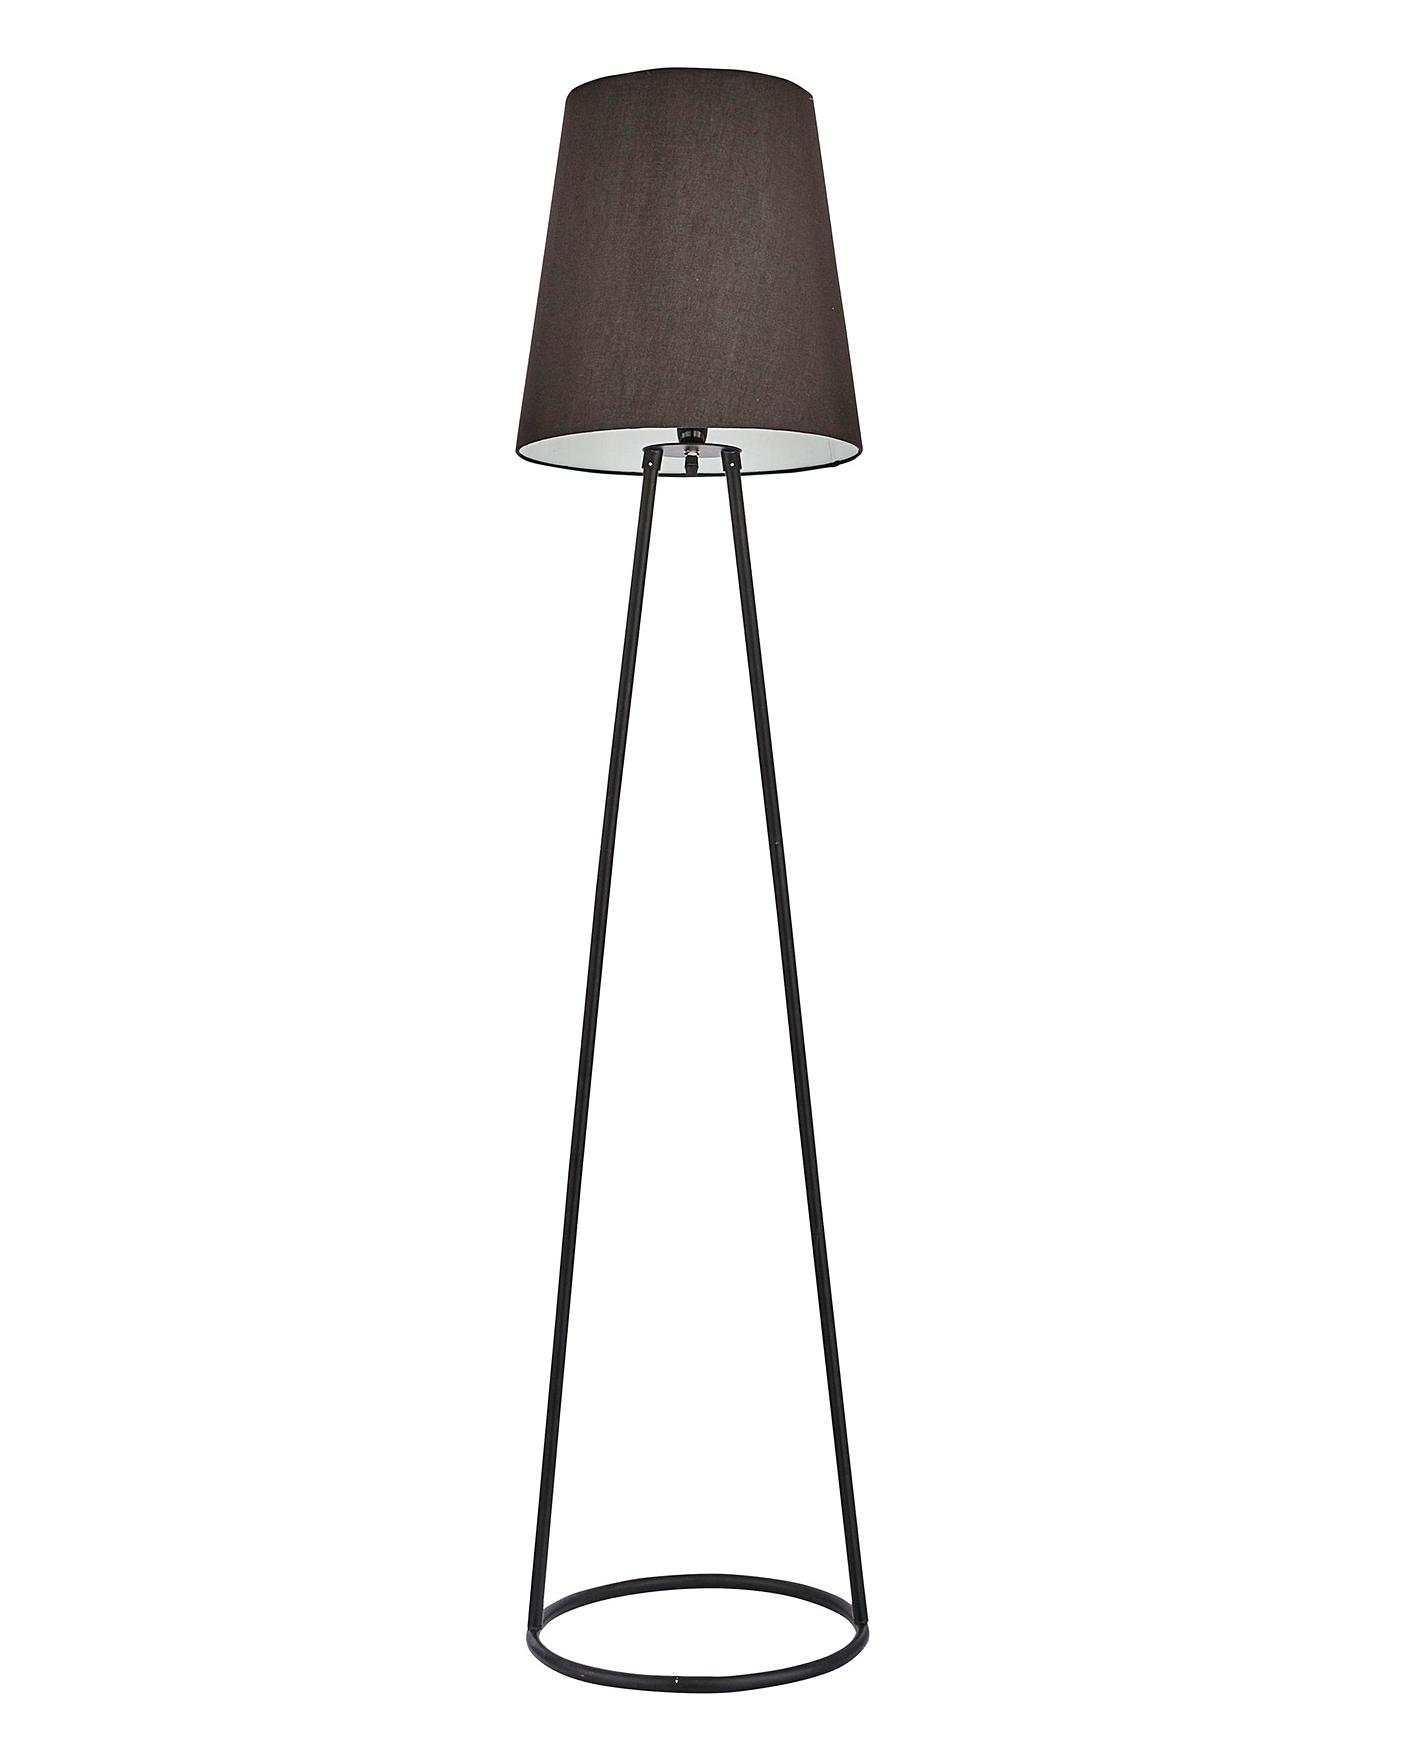 Description The Black Wire Floor Lamp